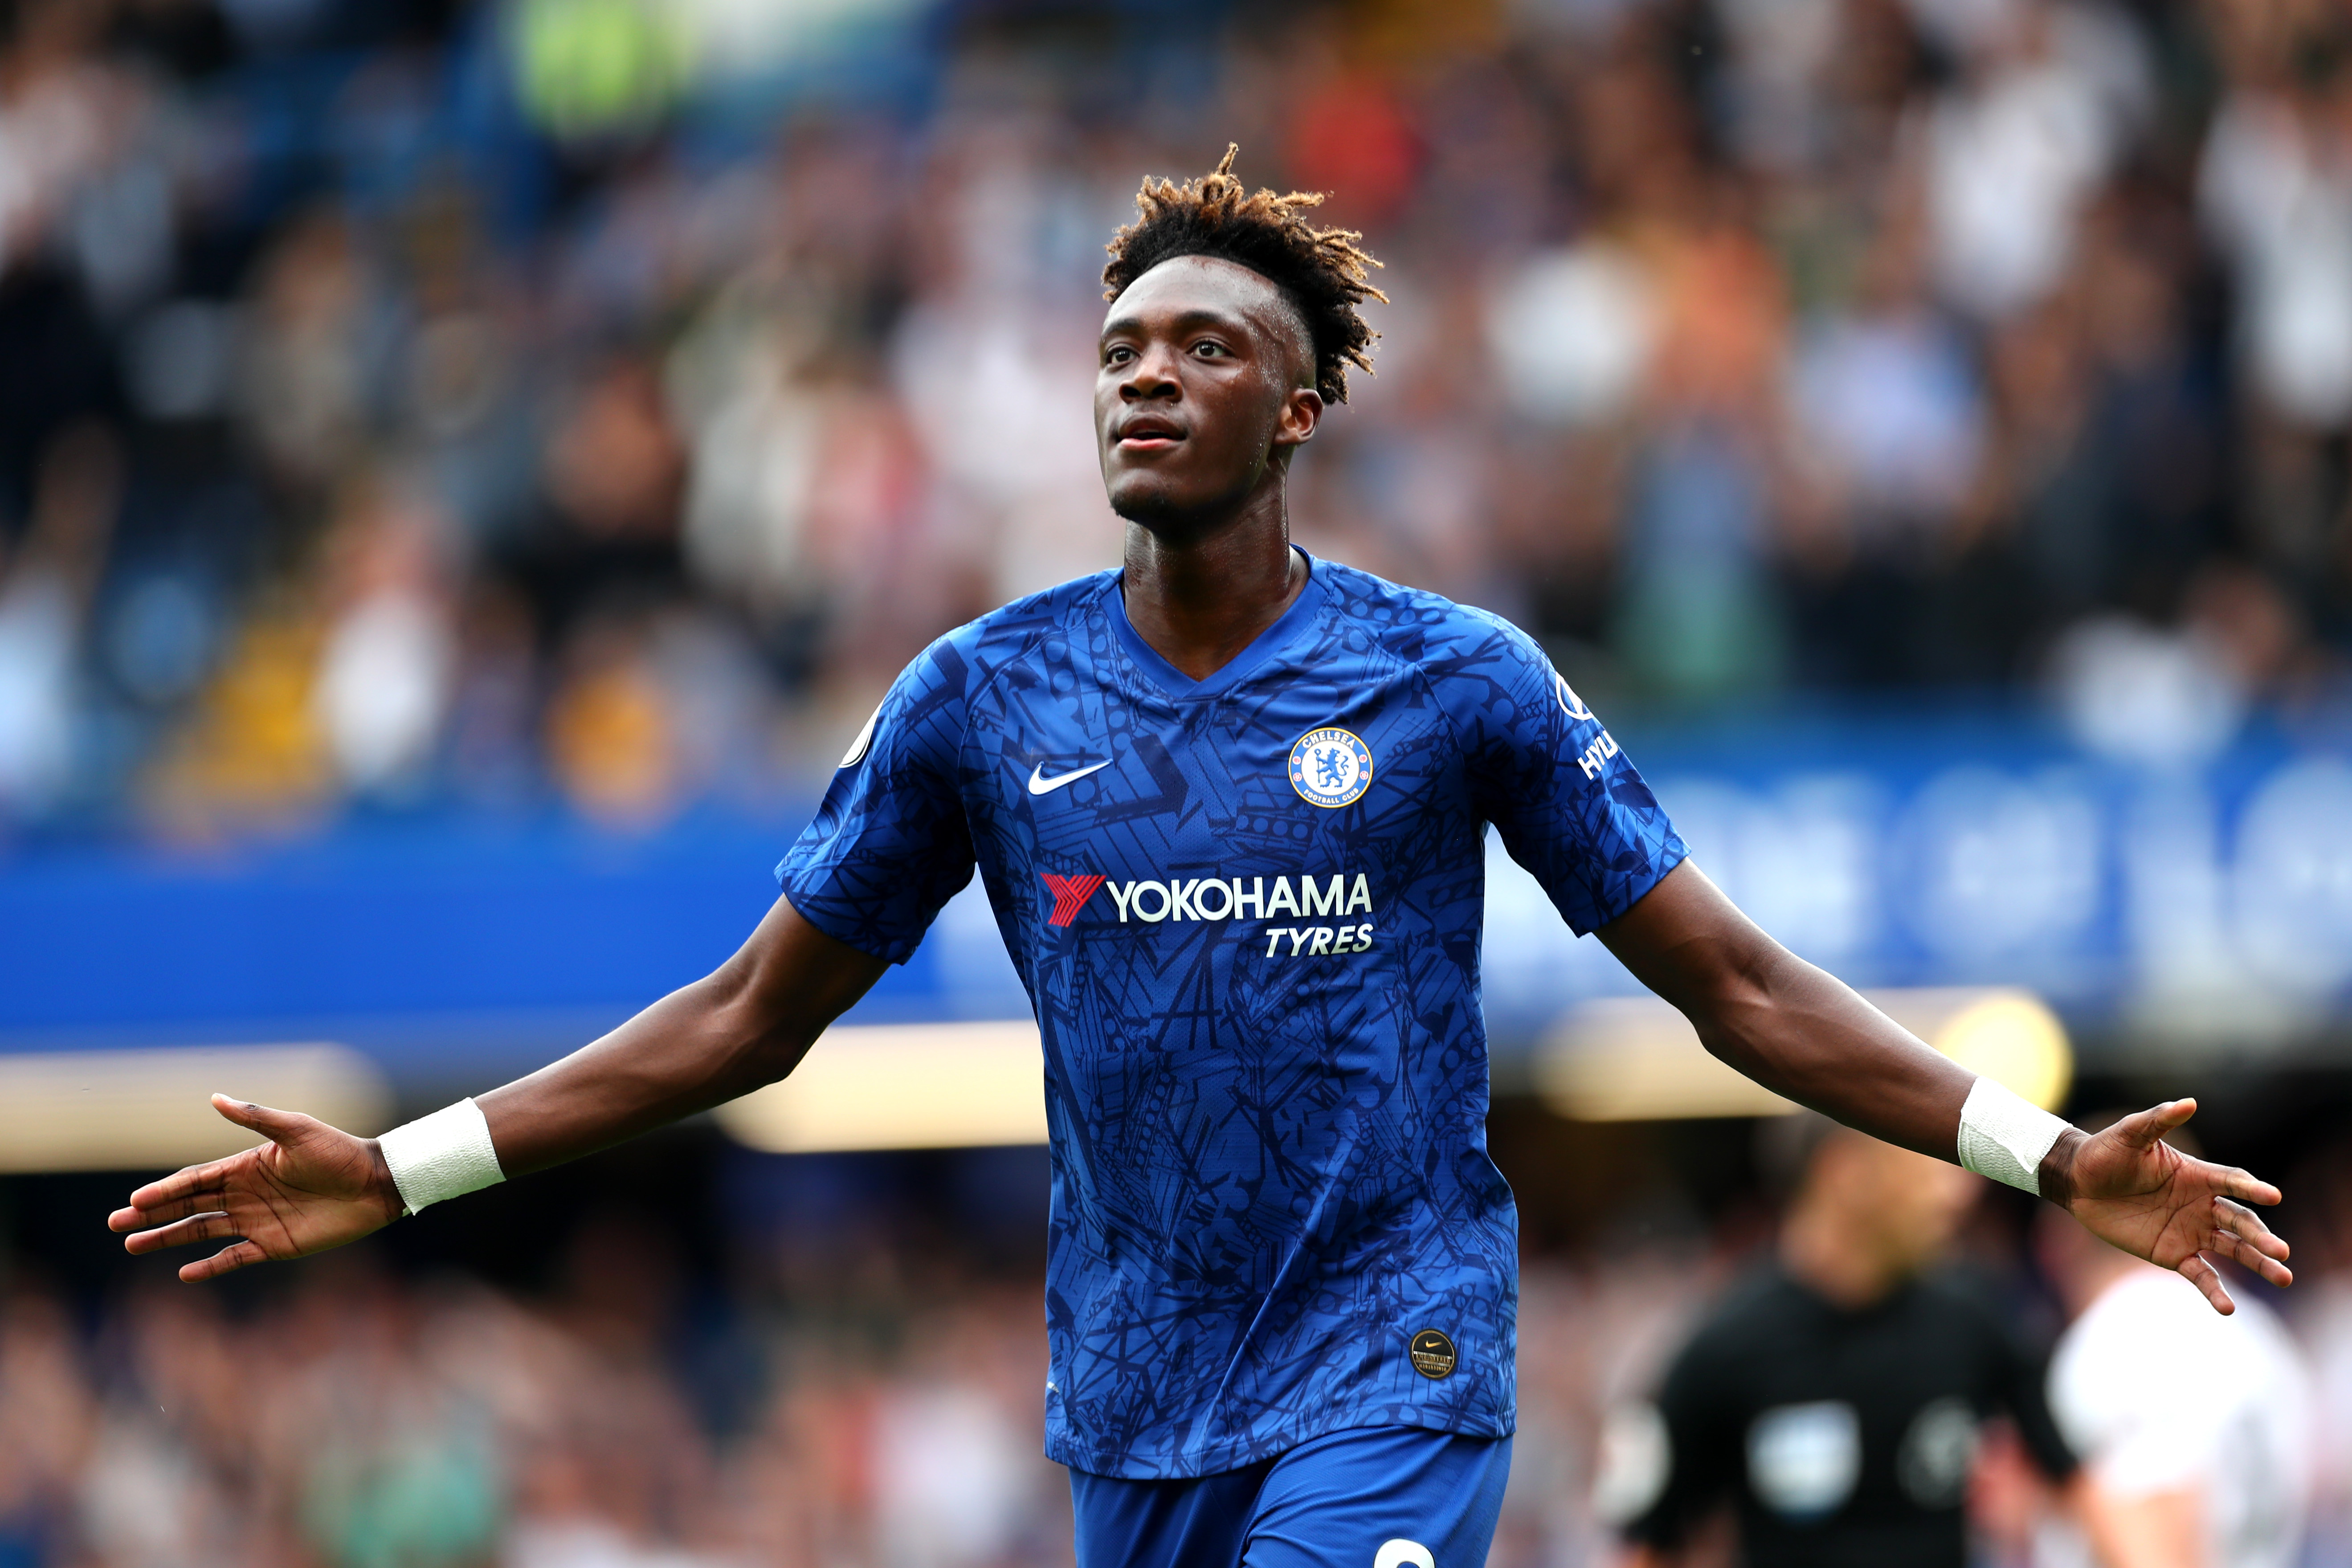 Tammy Abraham wants to follow in Didier Drogba's footsteps at Chelsea